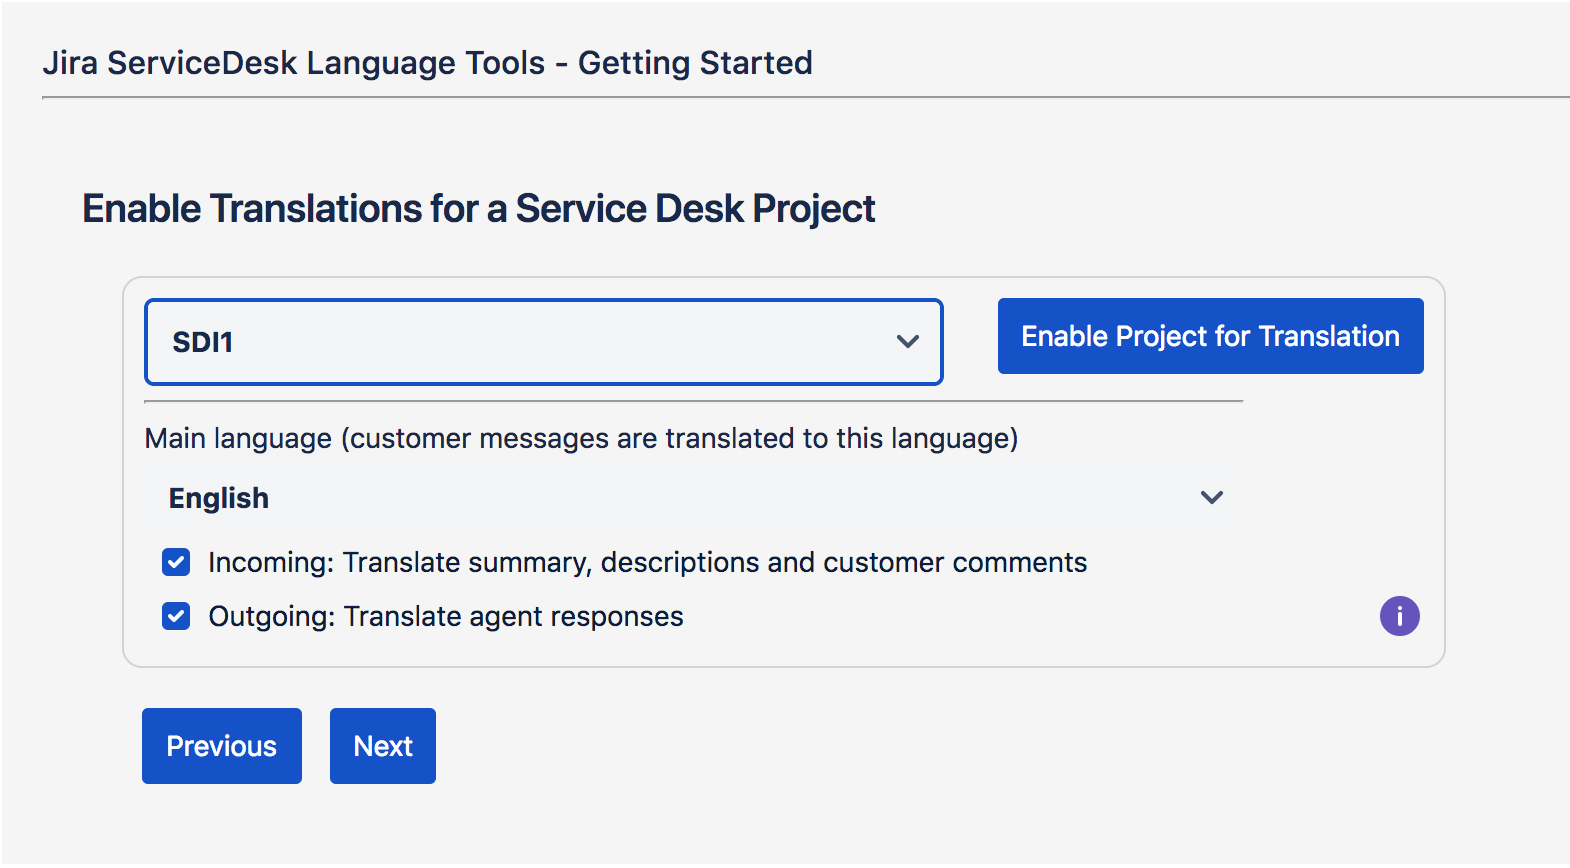 Enable Translation for Service Desk Projects